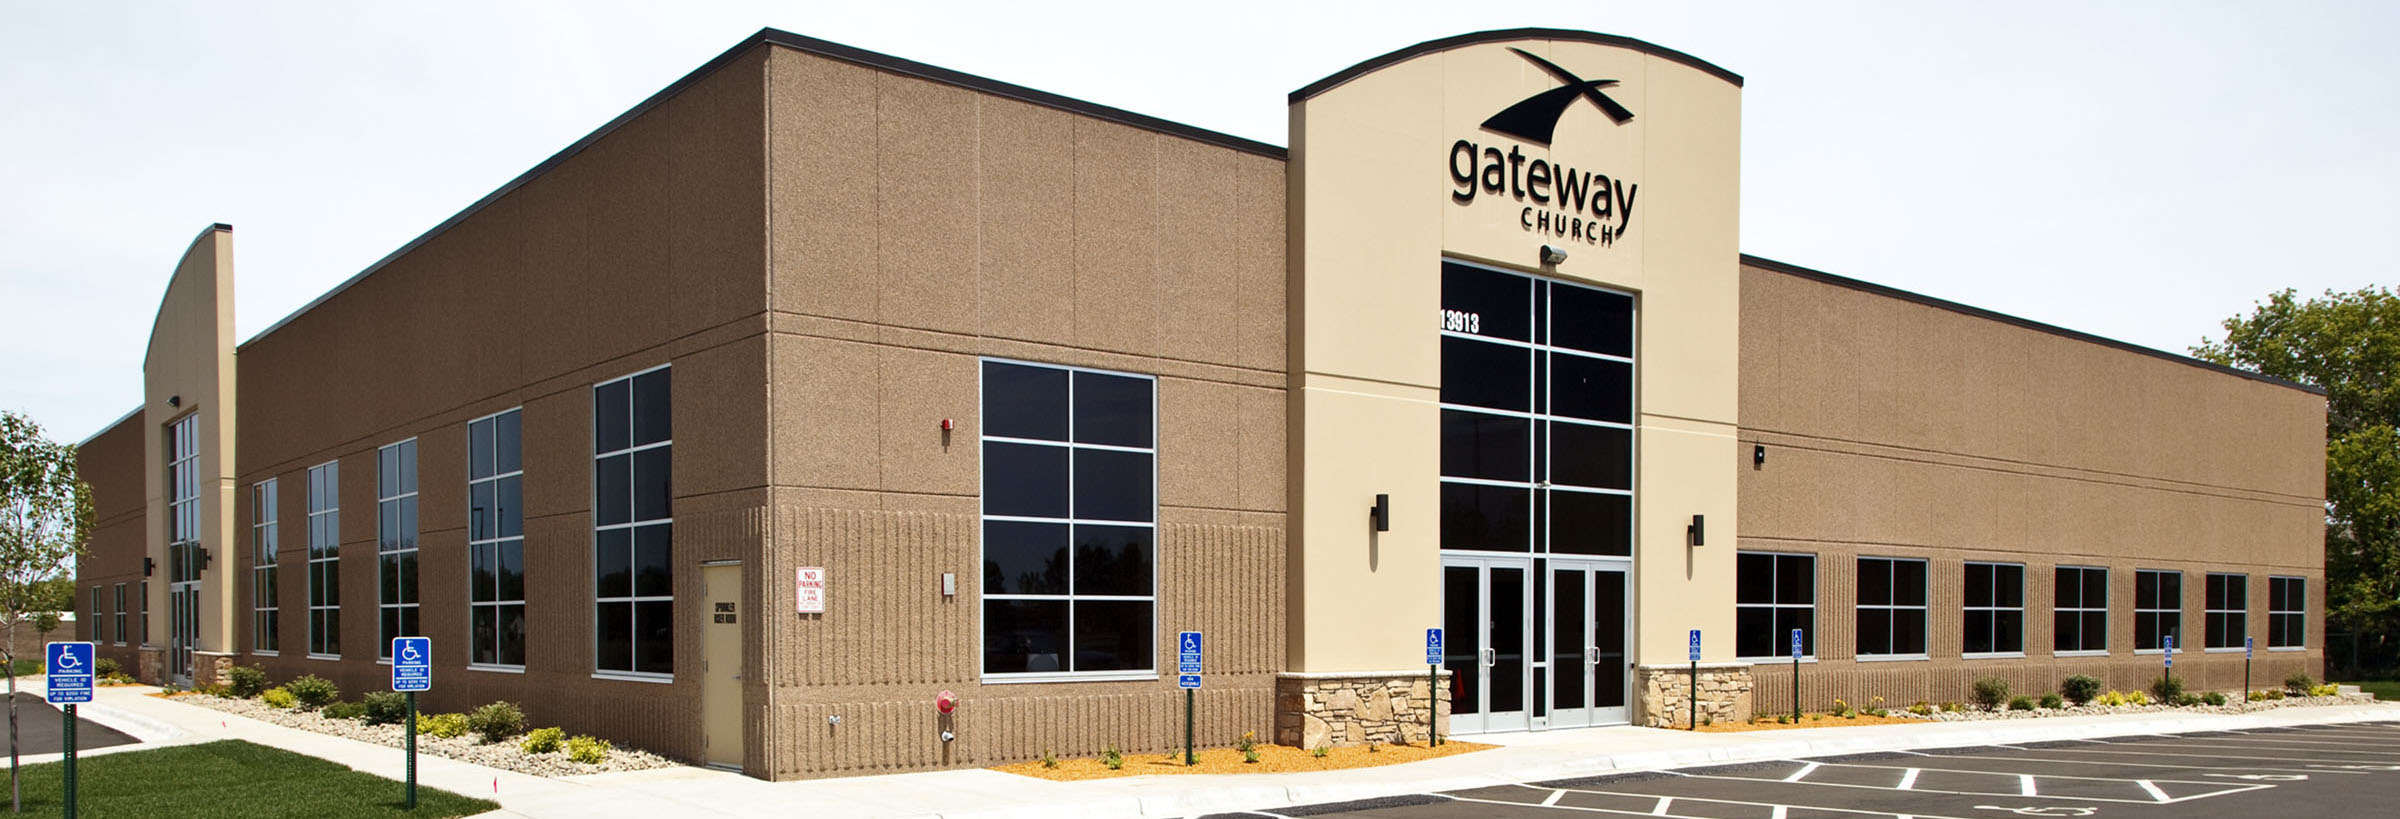 gateway_church_exterior